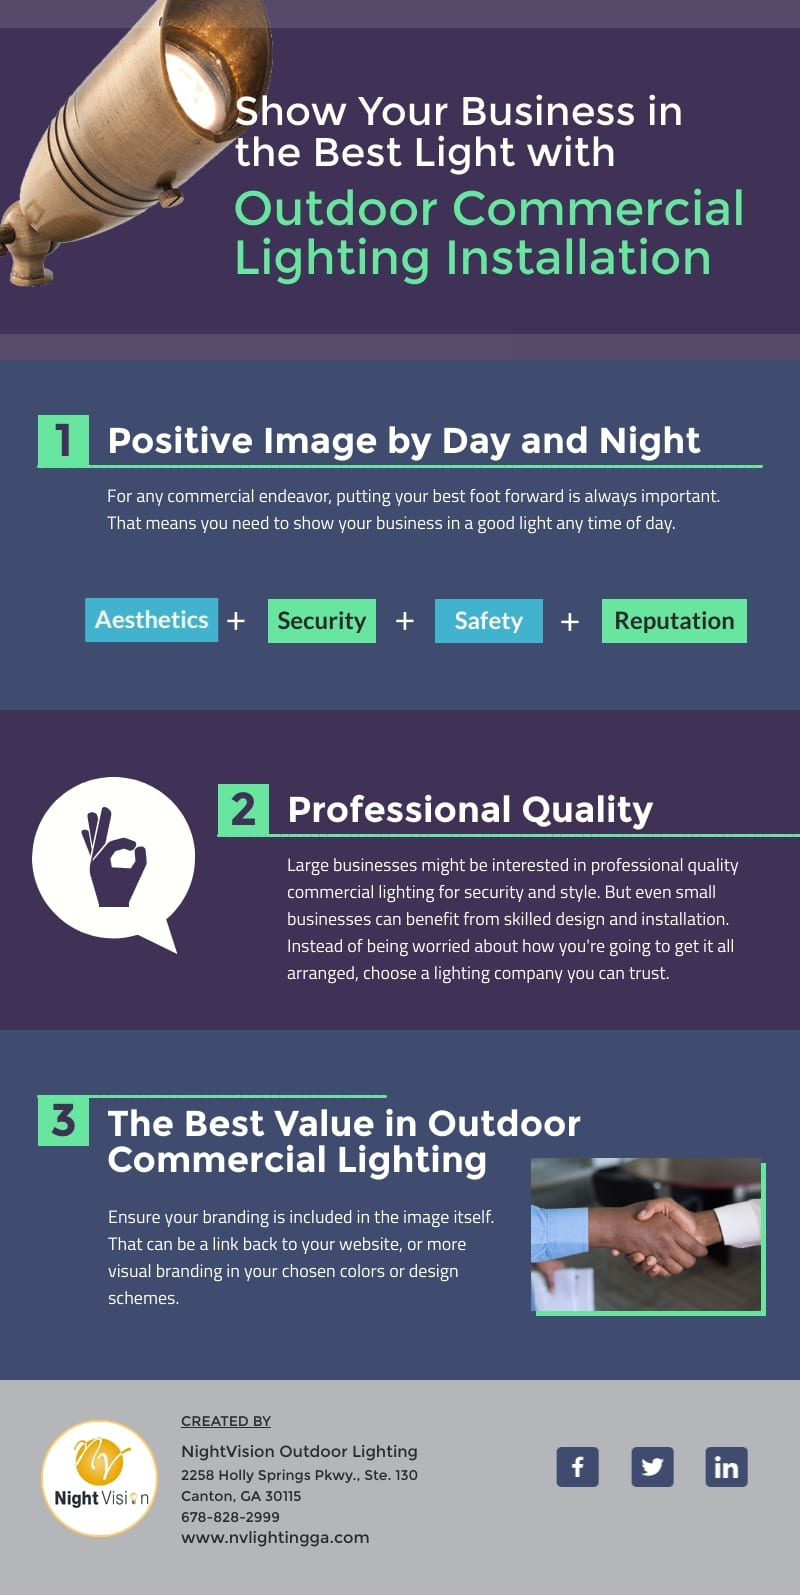 Show Your Business in the Best Light [infographic]